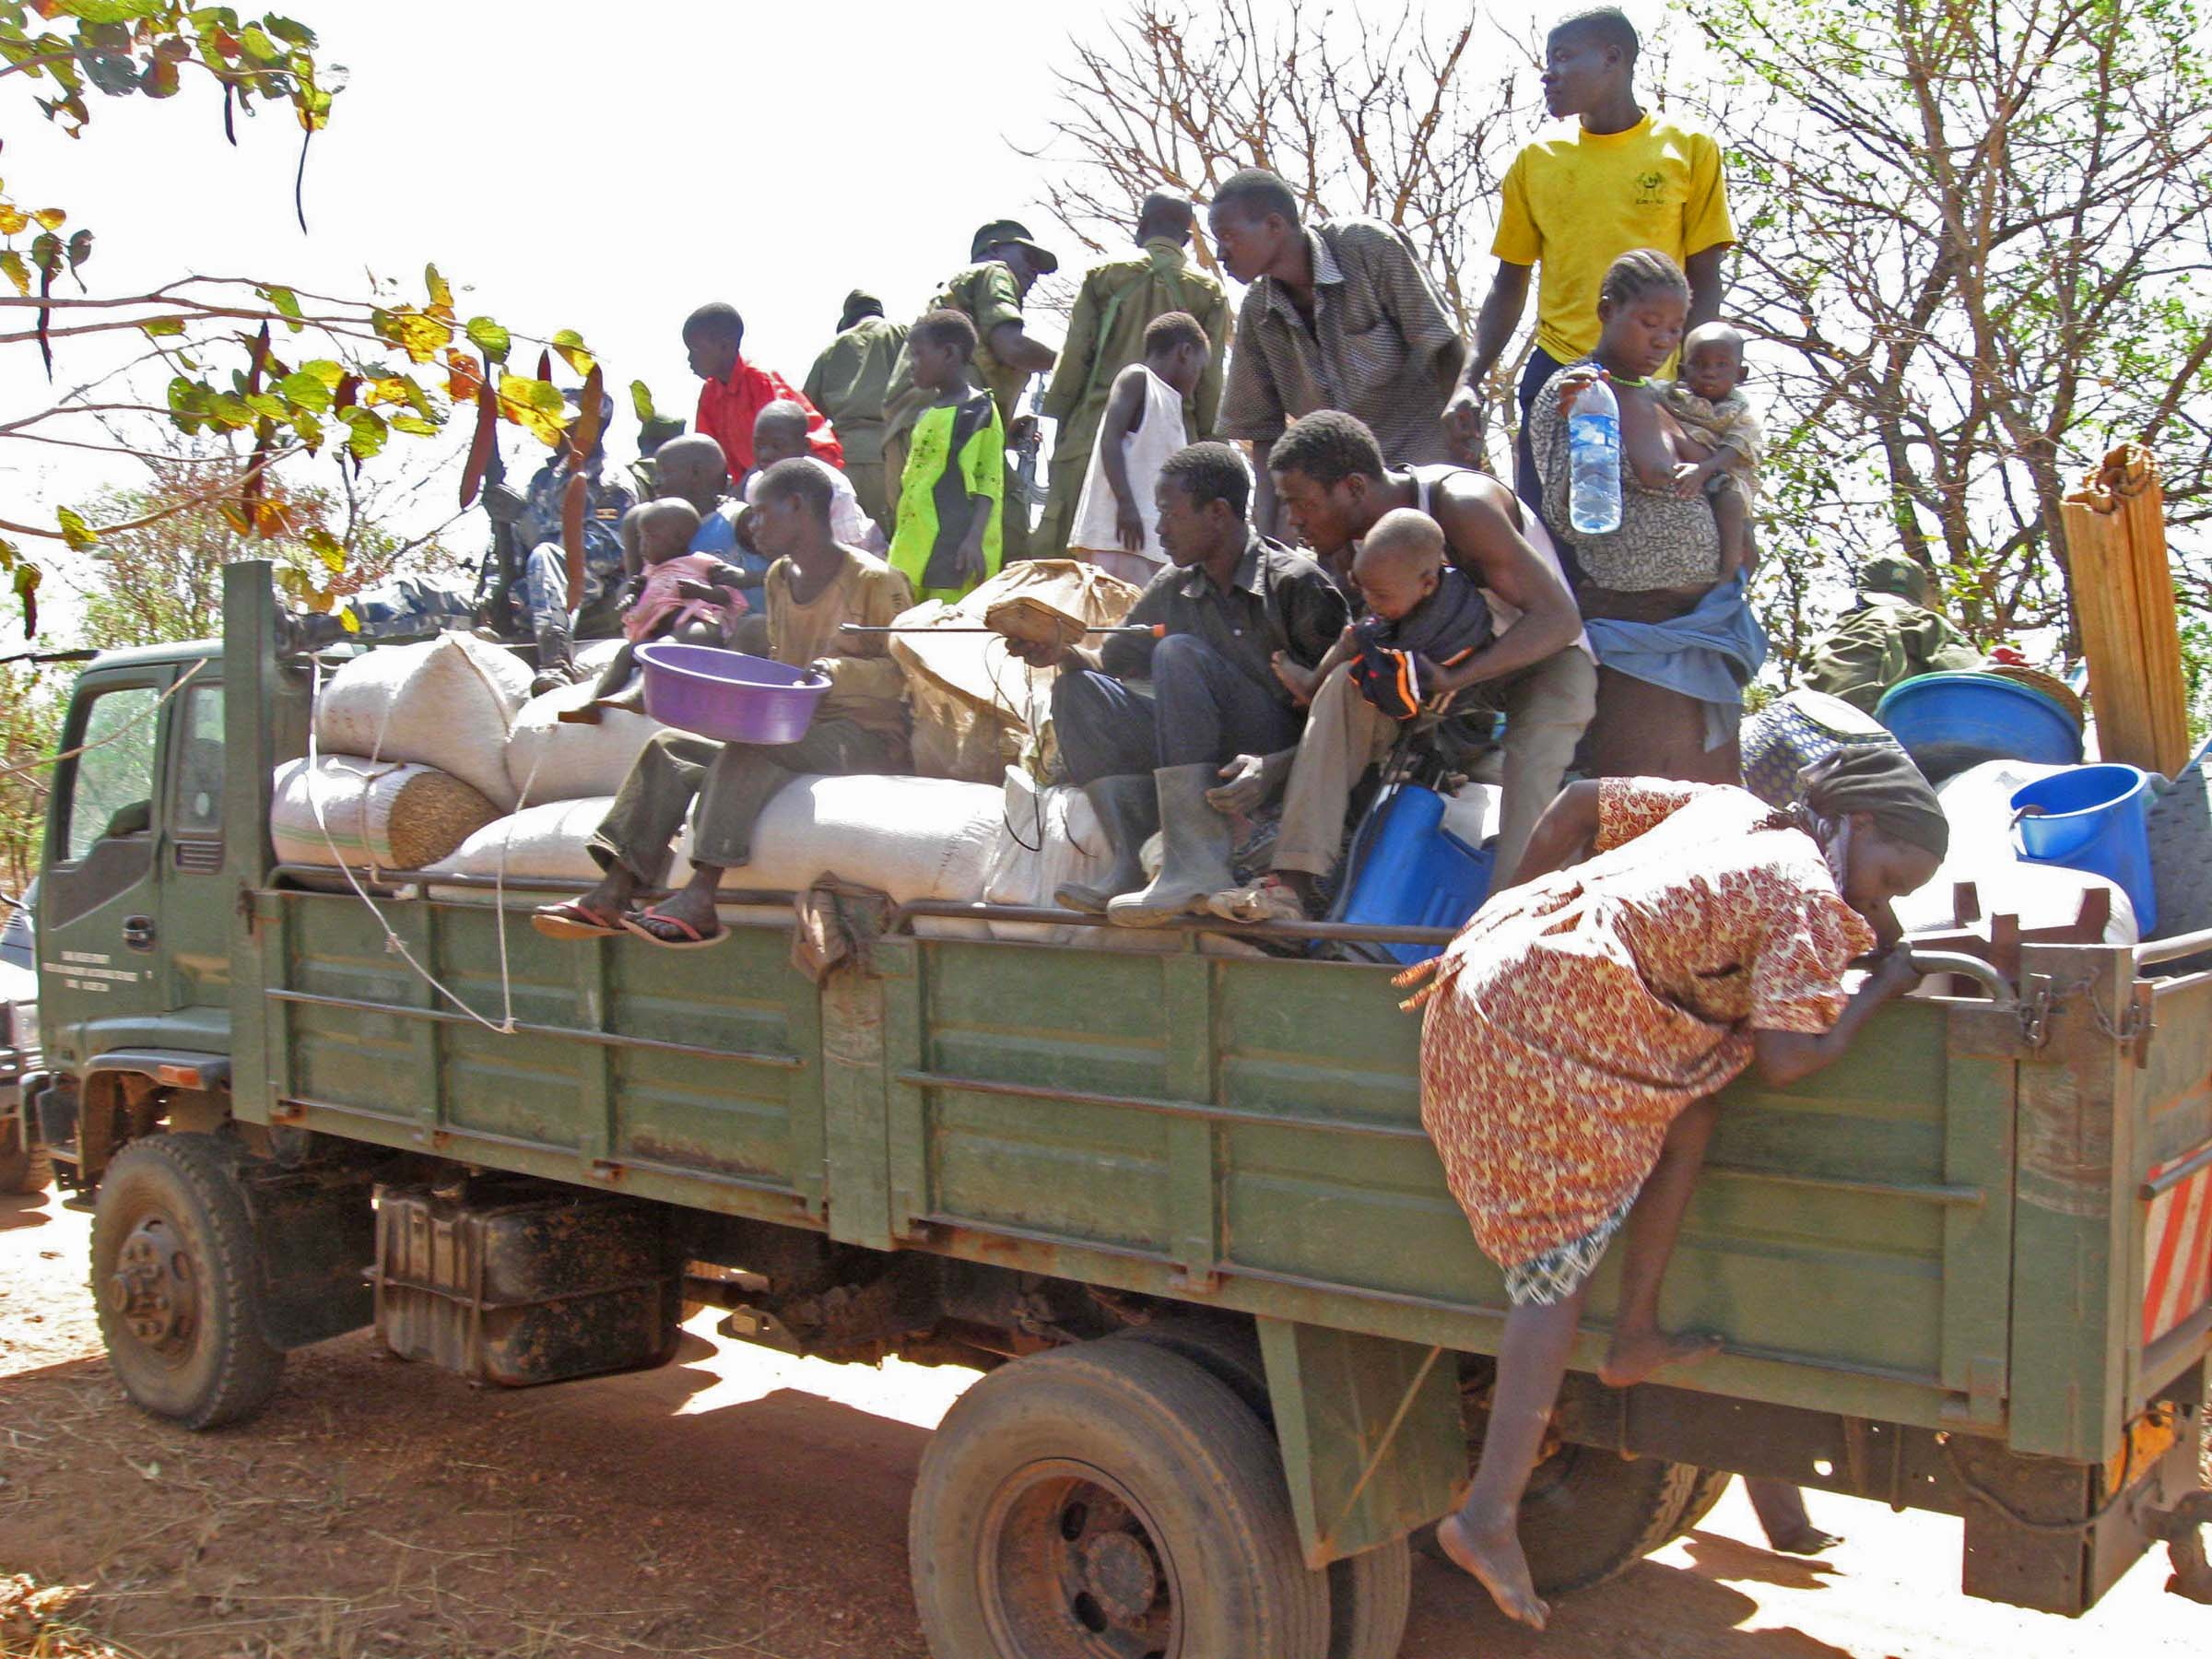 A woman climbs into a waiting truck in ongoing evictions in Apar, Amuru District